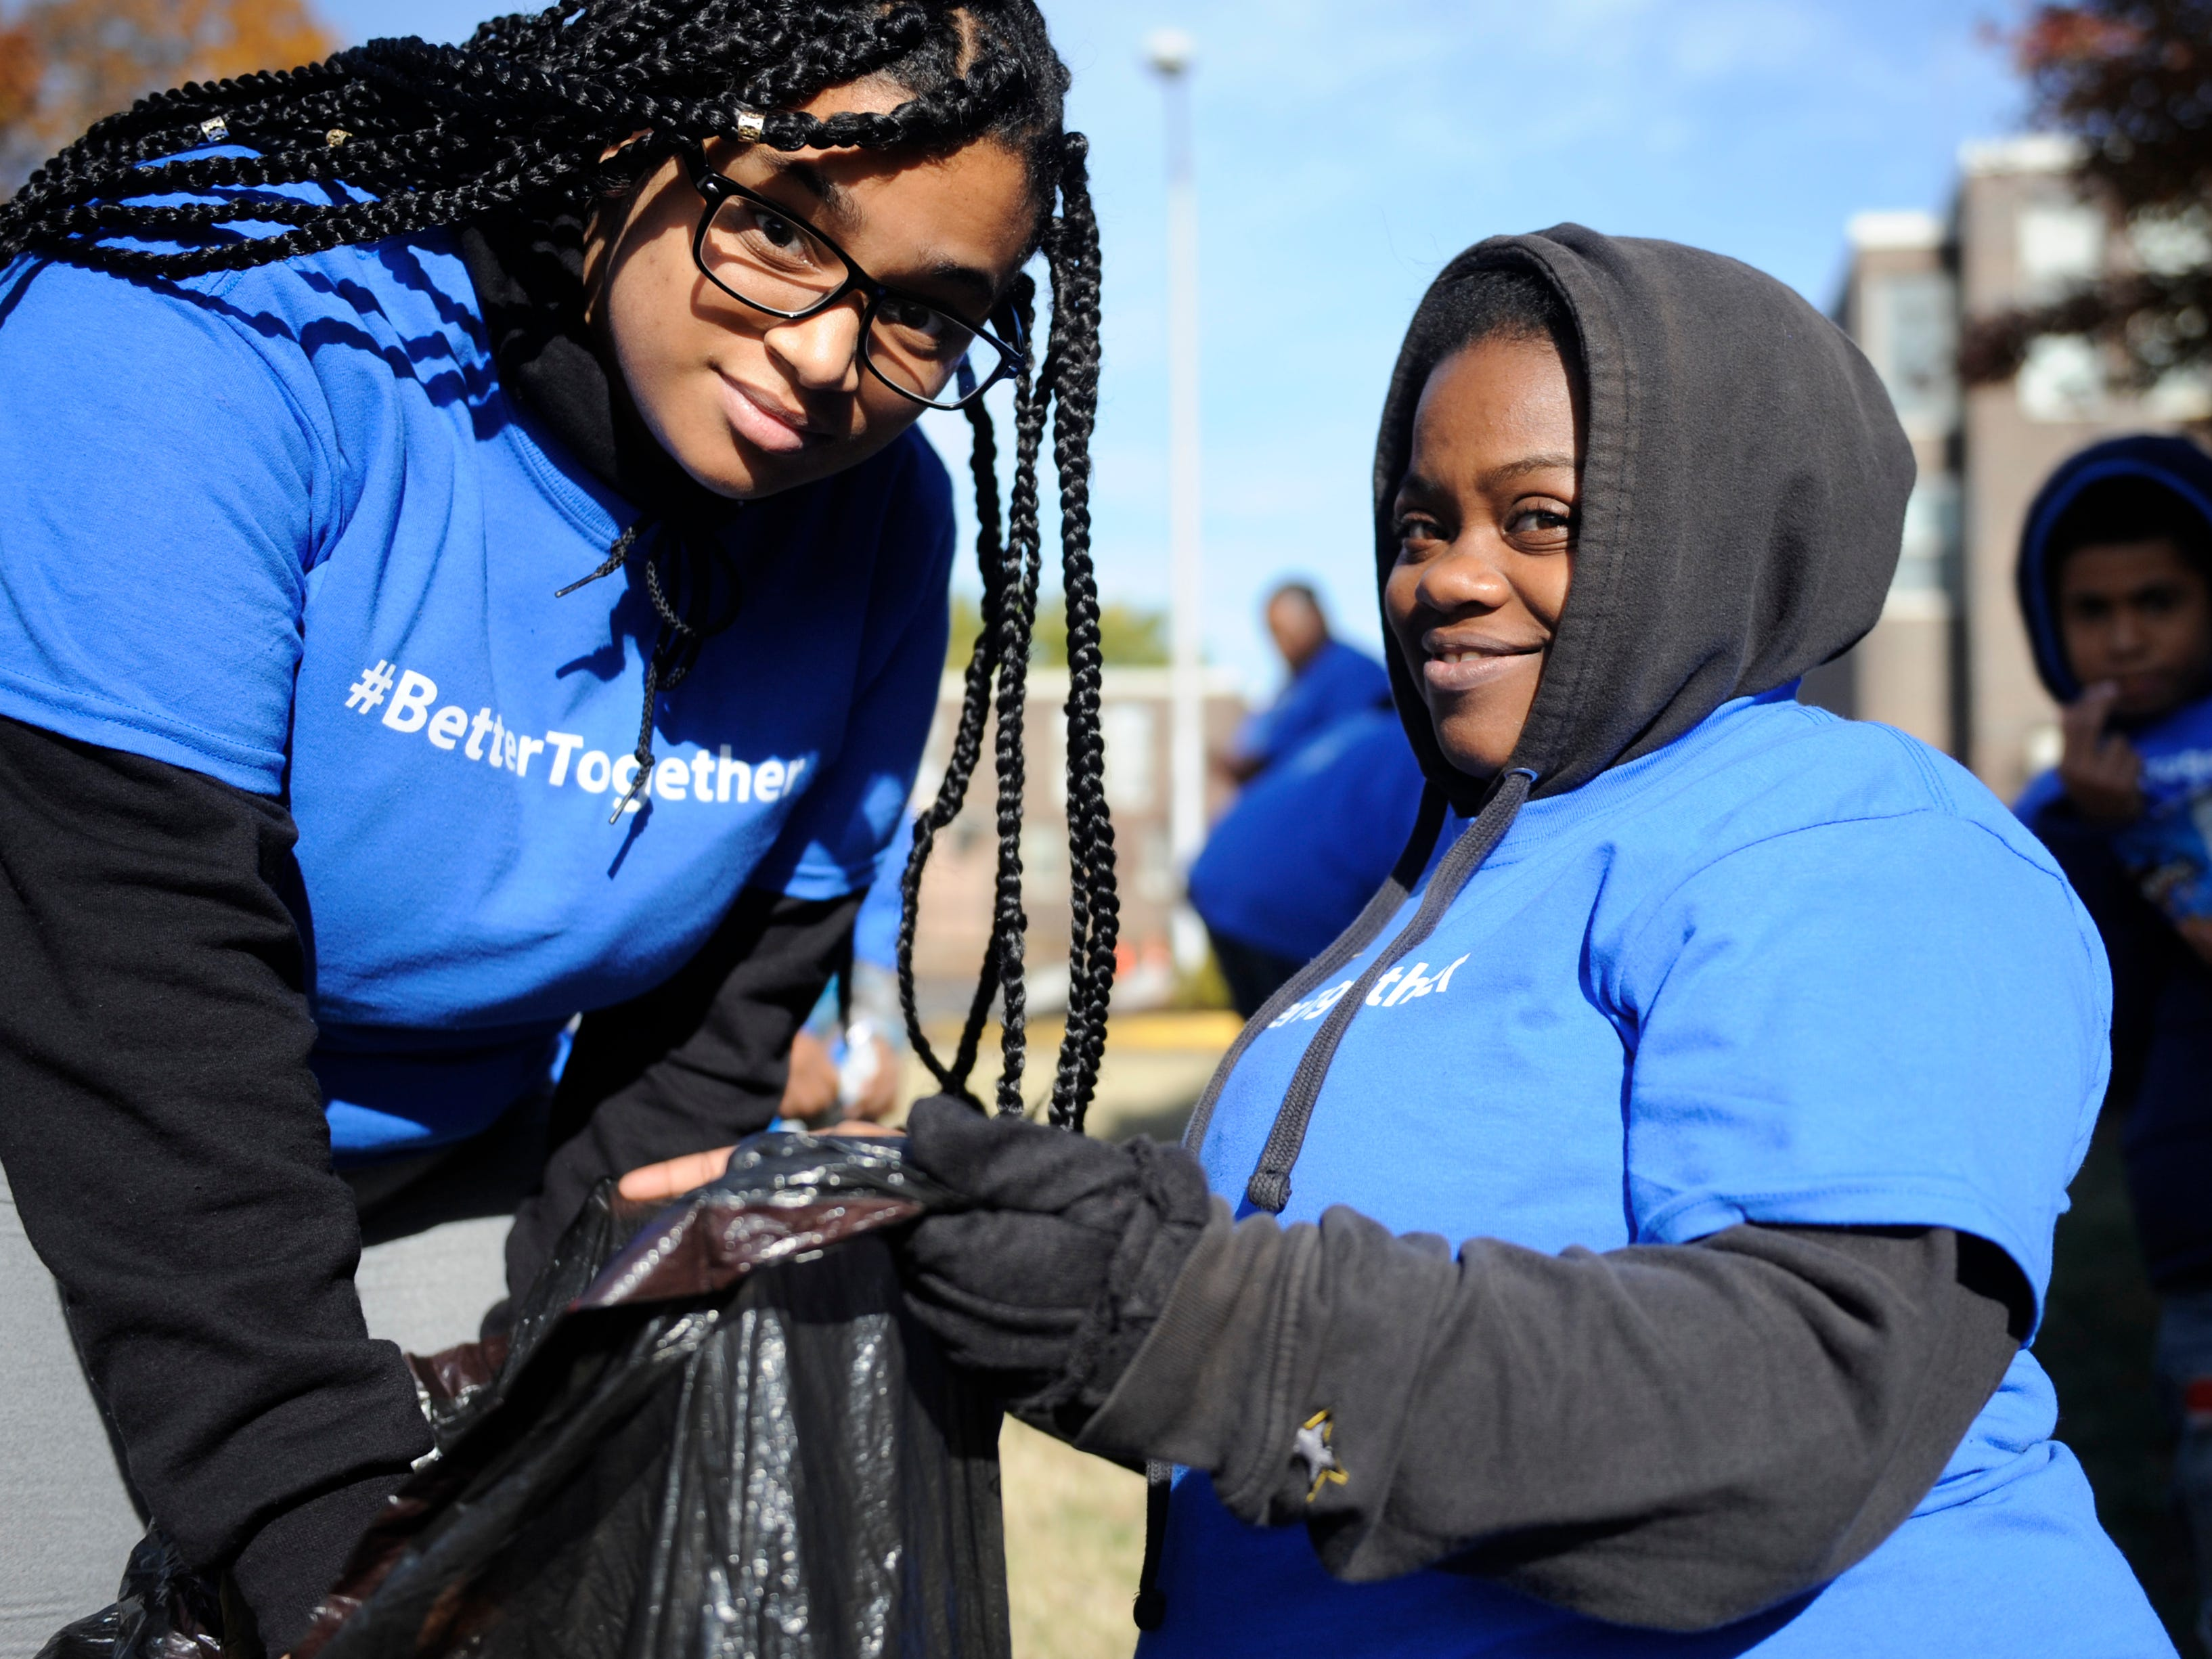 Oakview Apartments neighbors Alexis Acosta, 16, (left) and Vernique Risley, 27, join in on the clean up festivities during a community event.